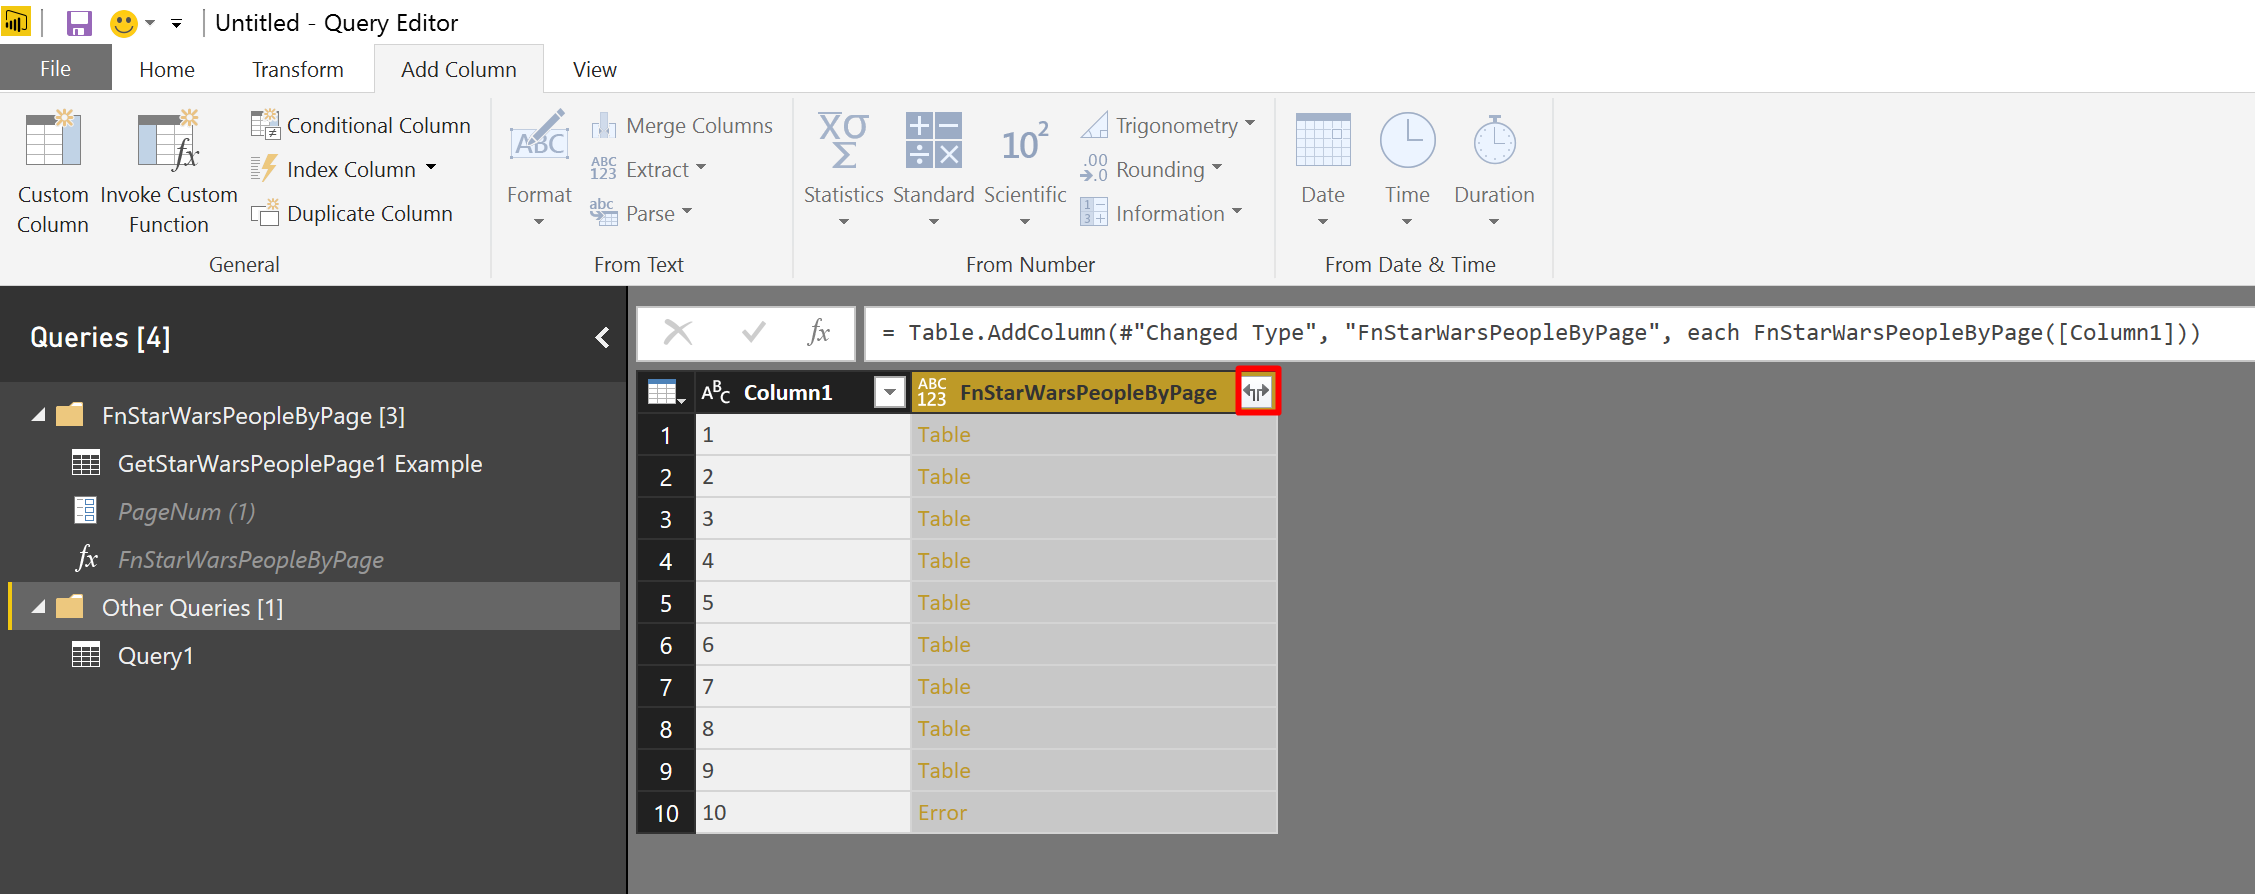 We were able to apply the function in Power BI. Next step is to expand the columns of each table object.